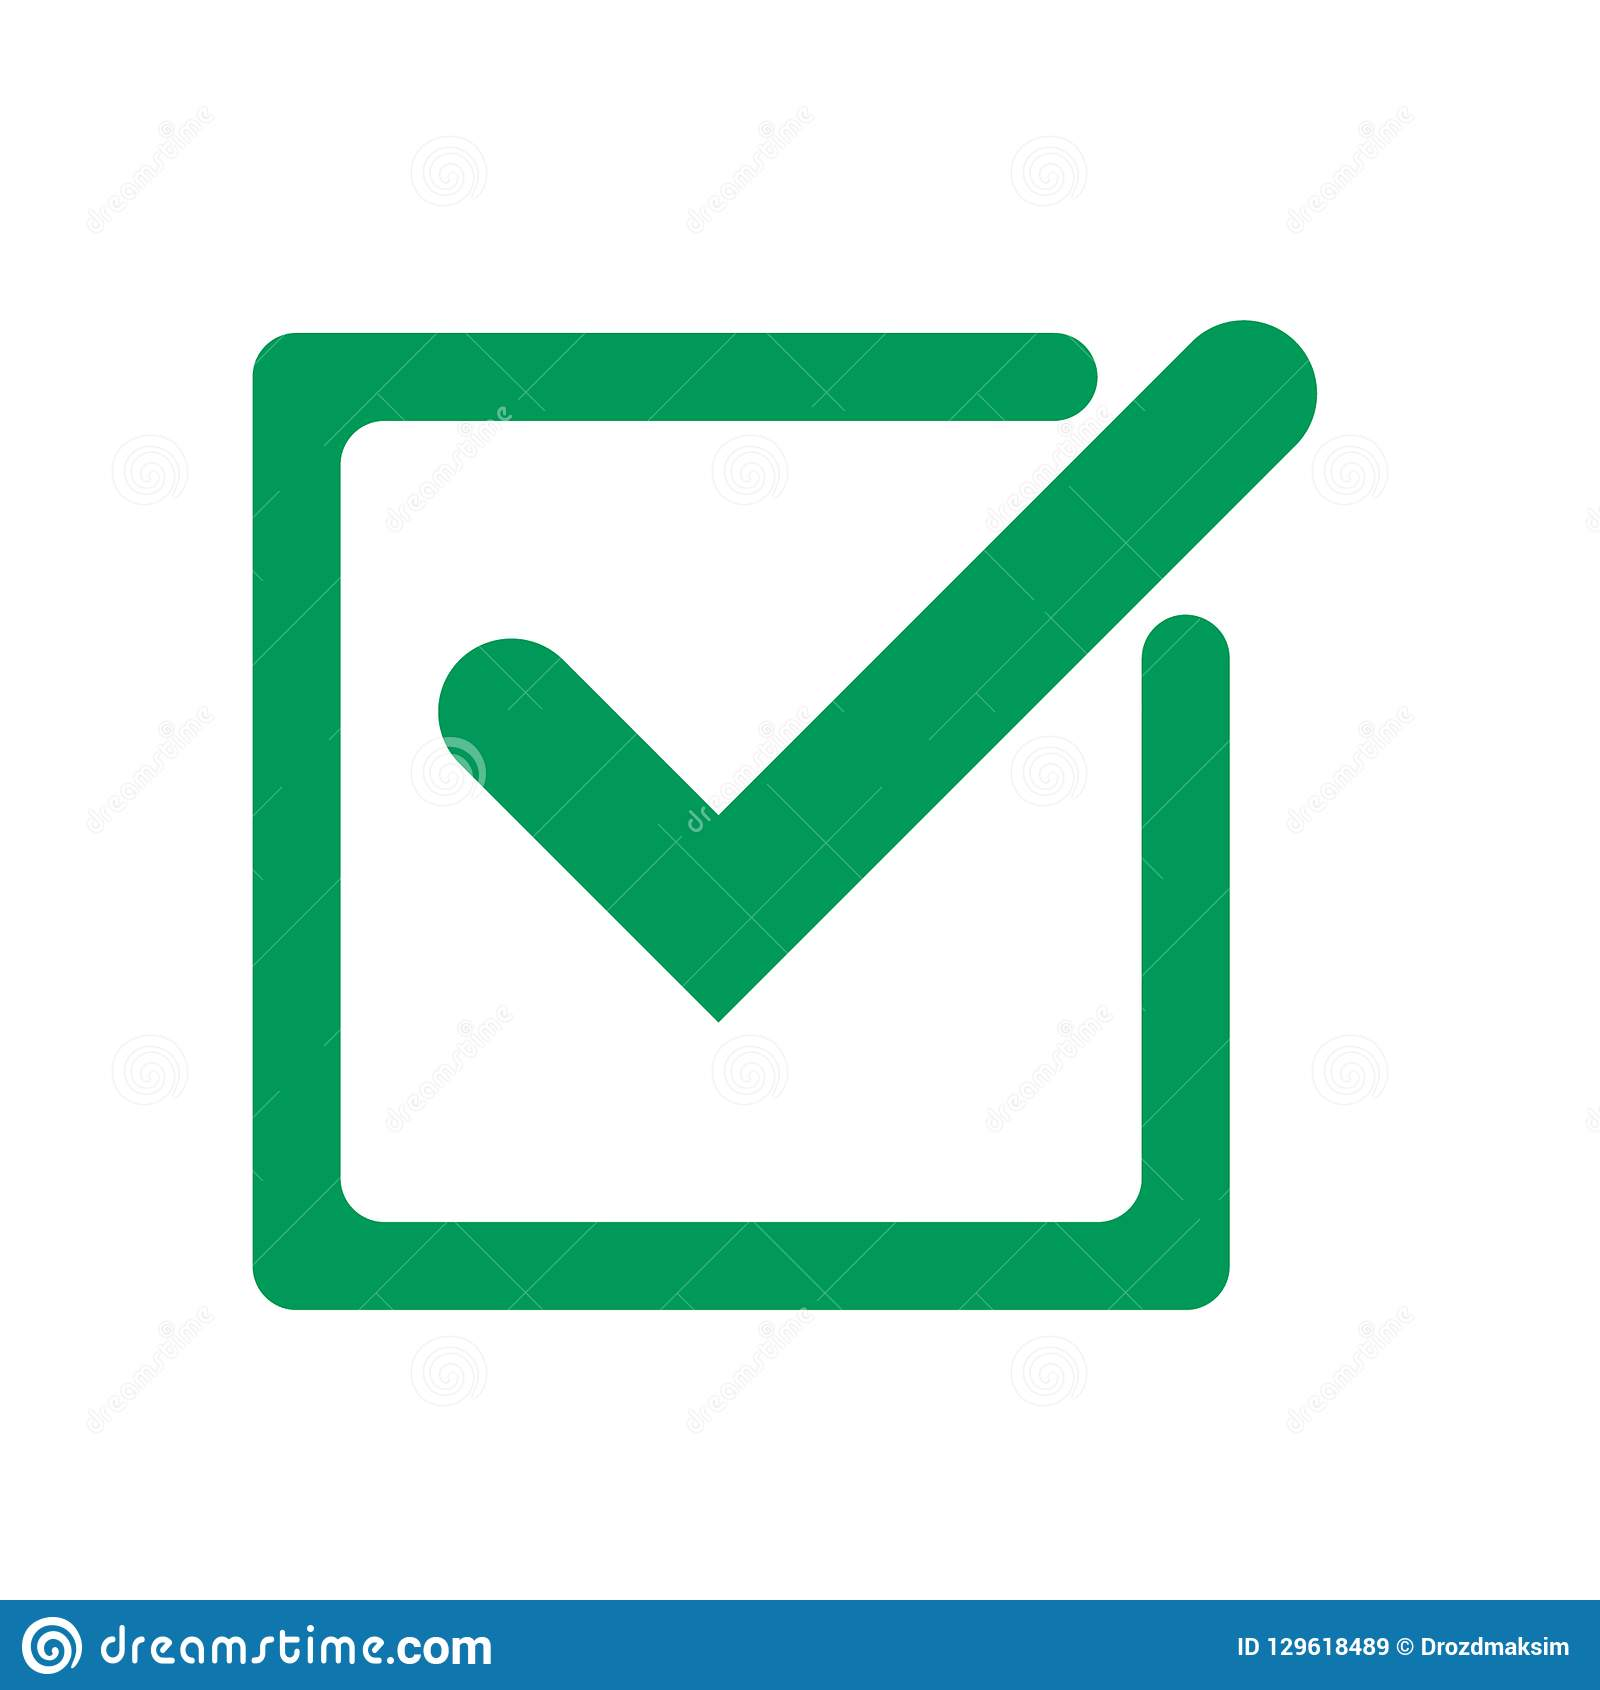 Tick icon vector symbol, green checkmark isolated on white background, check mark or checkbox pictogram